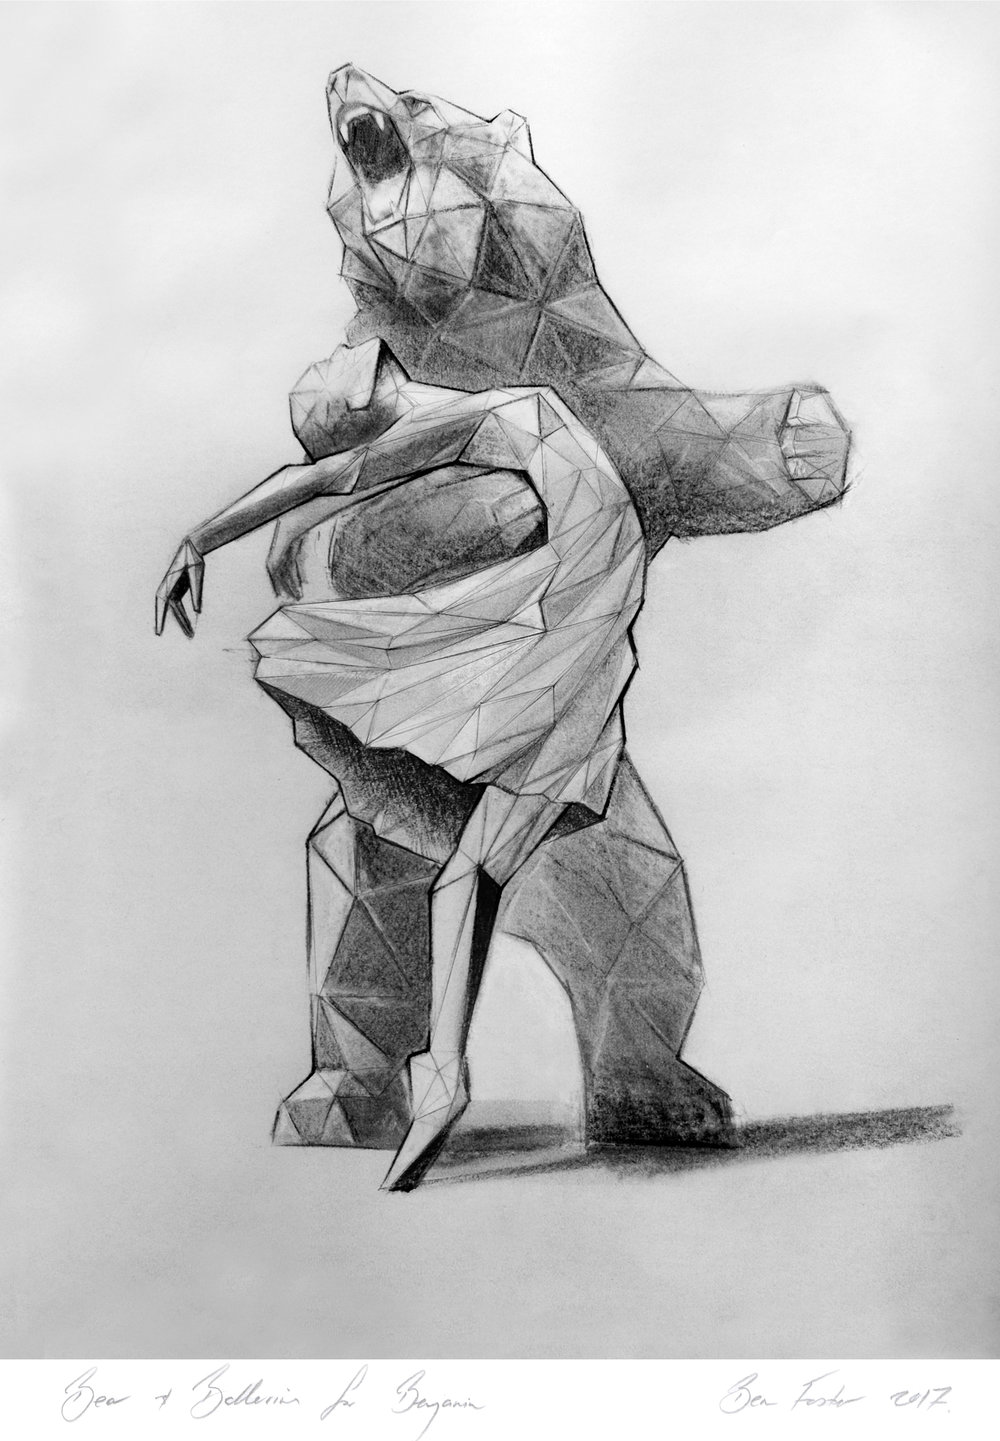 The Bear and Ballerina concept sketch by Ben Foster